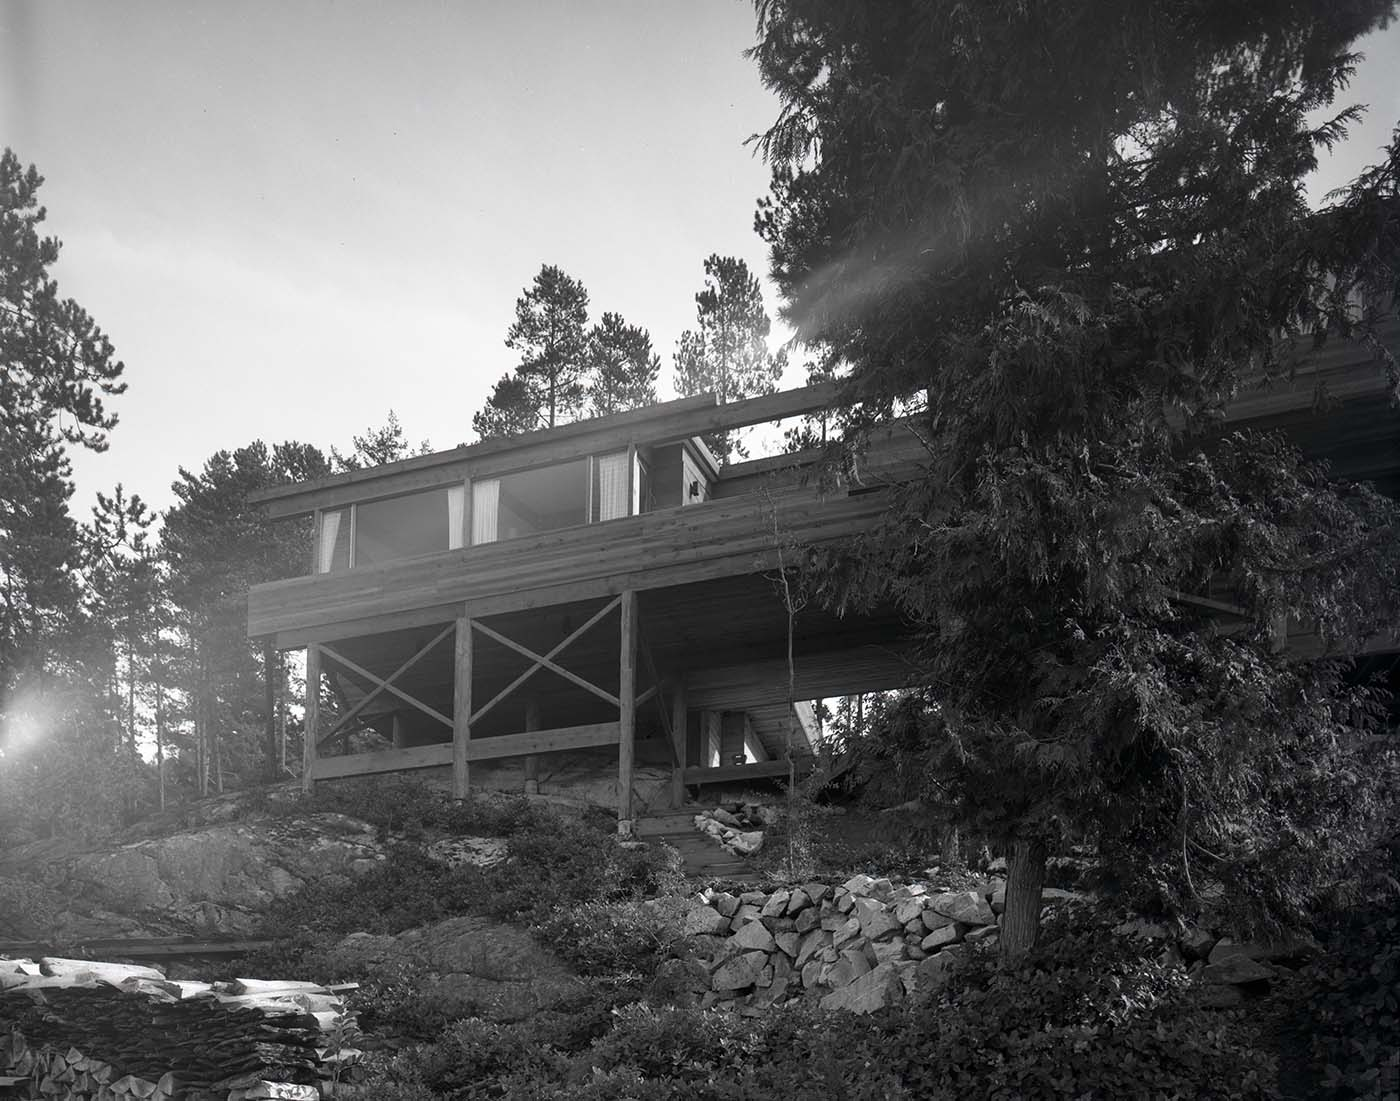 Anton Residence (Erickson and Massey), Photo by Fred Schiffer, 1967.